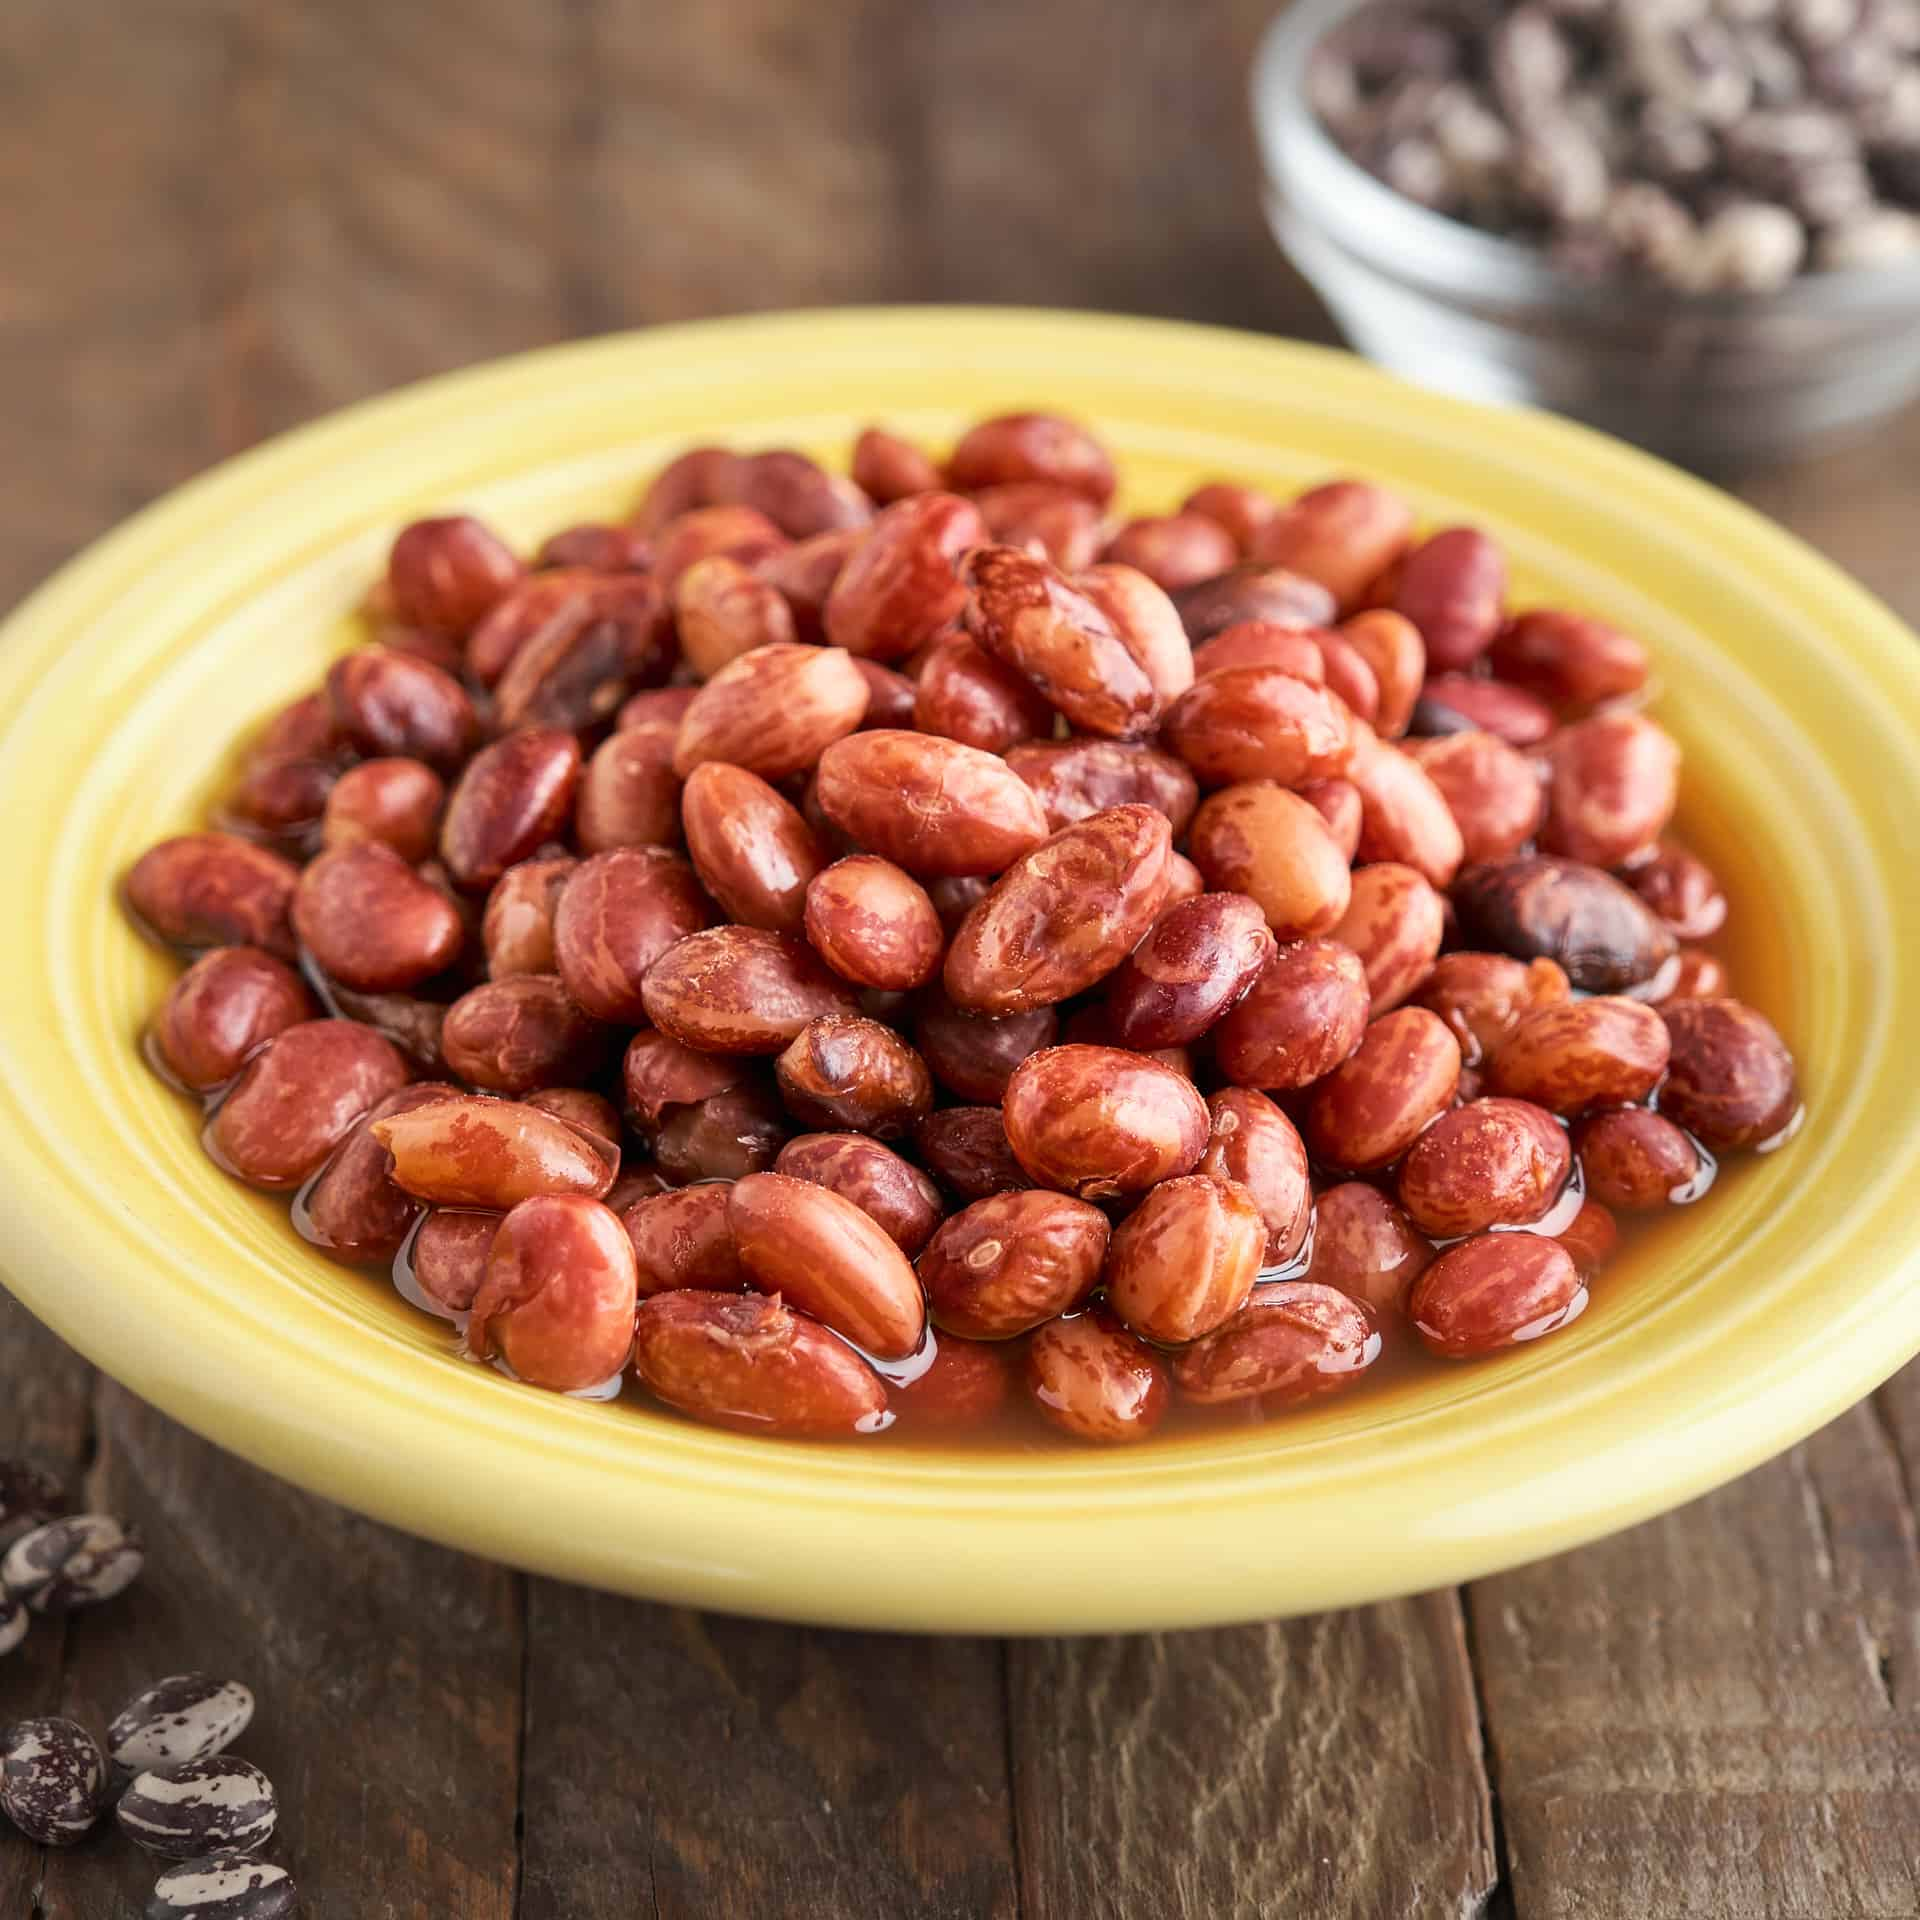 A bowl of Good Mother Stallard beans, with uncooked beans in the foreground